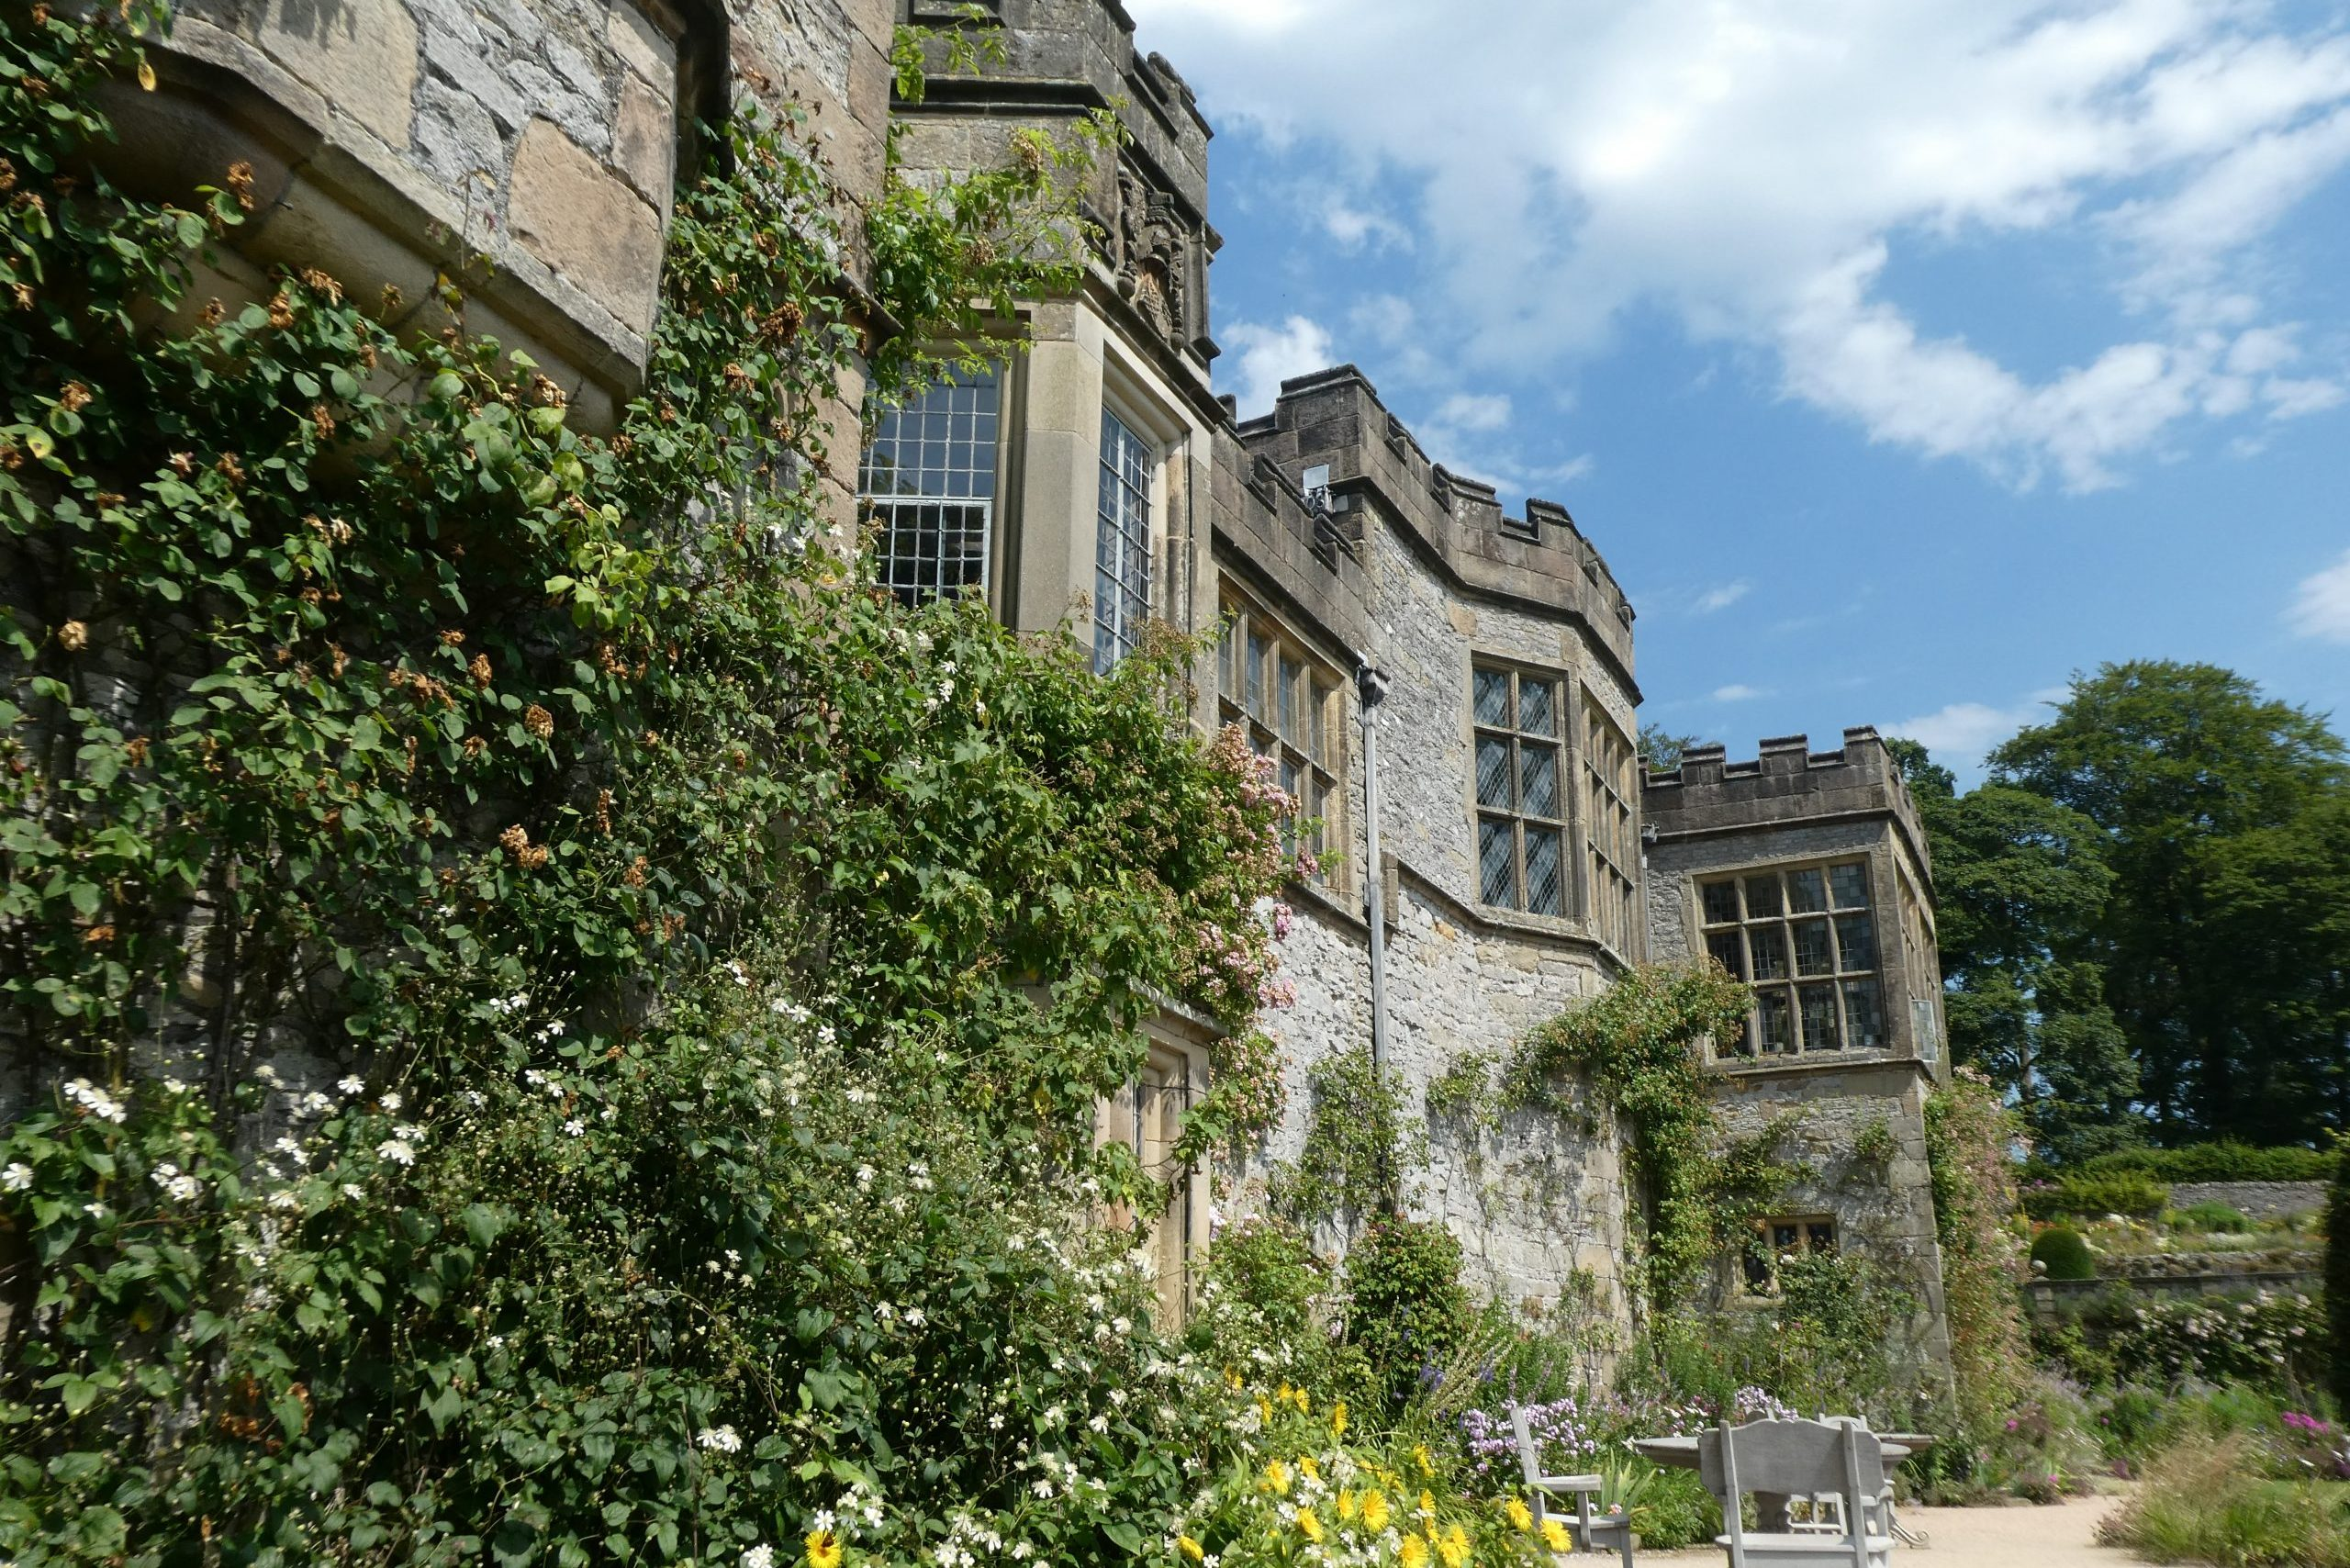 Visit beautiful Haddon Hall with Allied Taxis